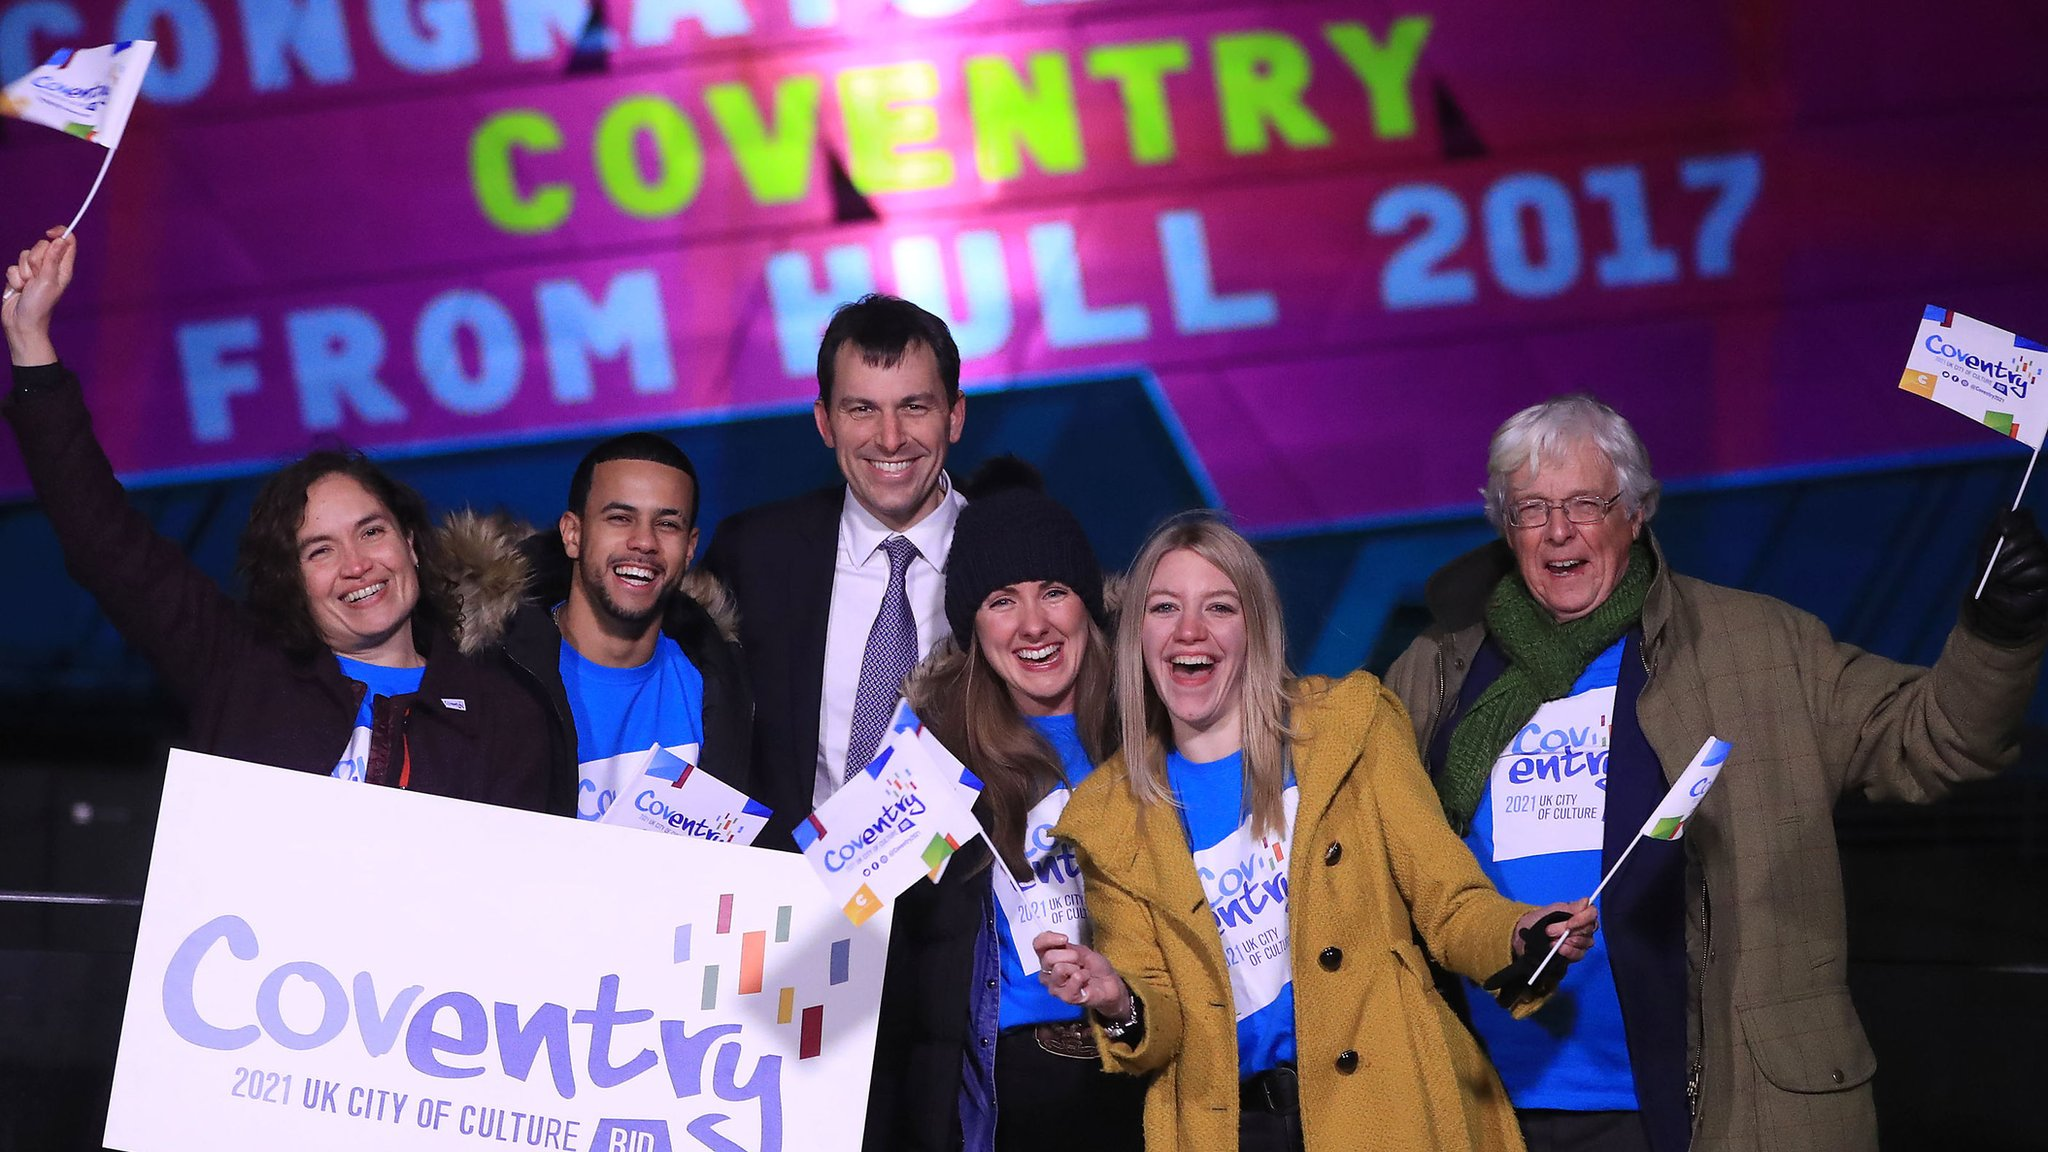 UK City of Culture 2021: Coventry wins